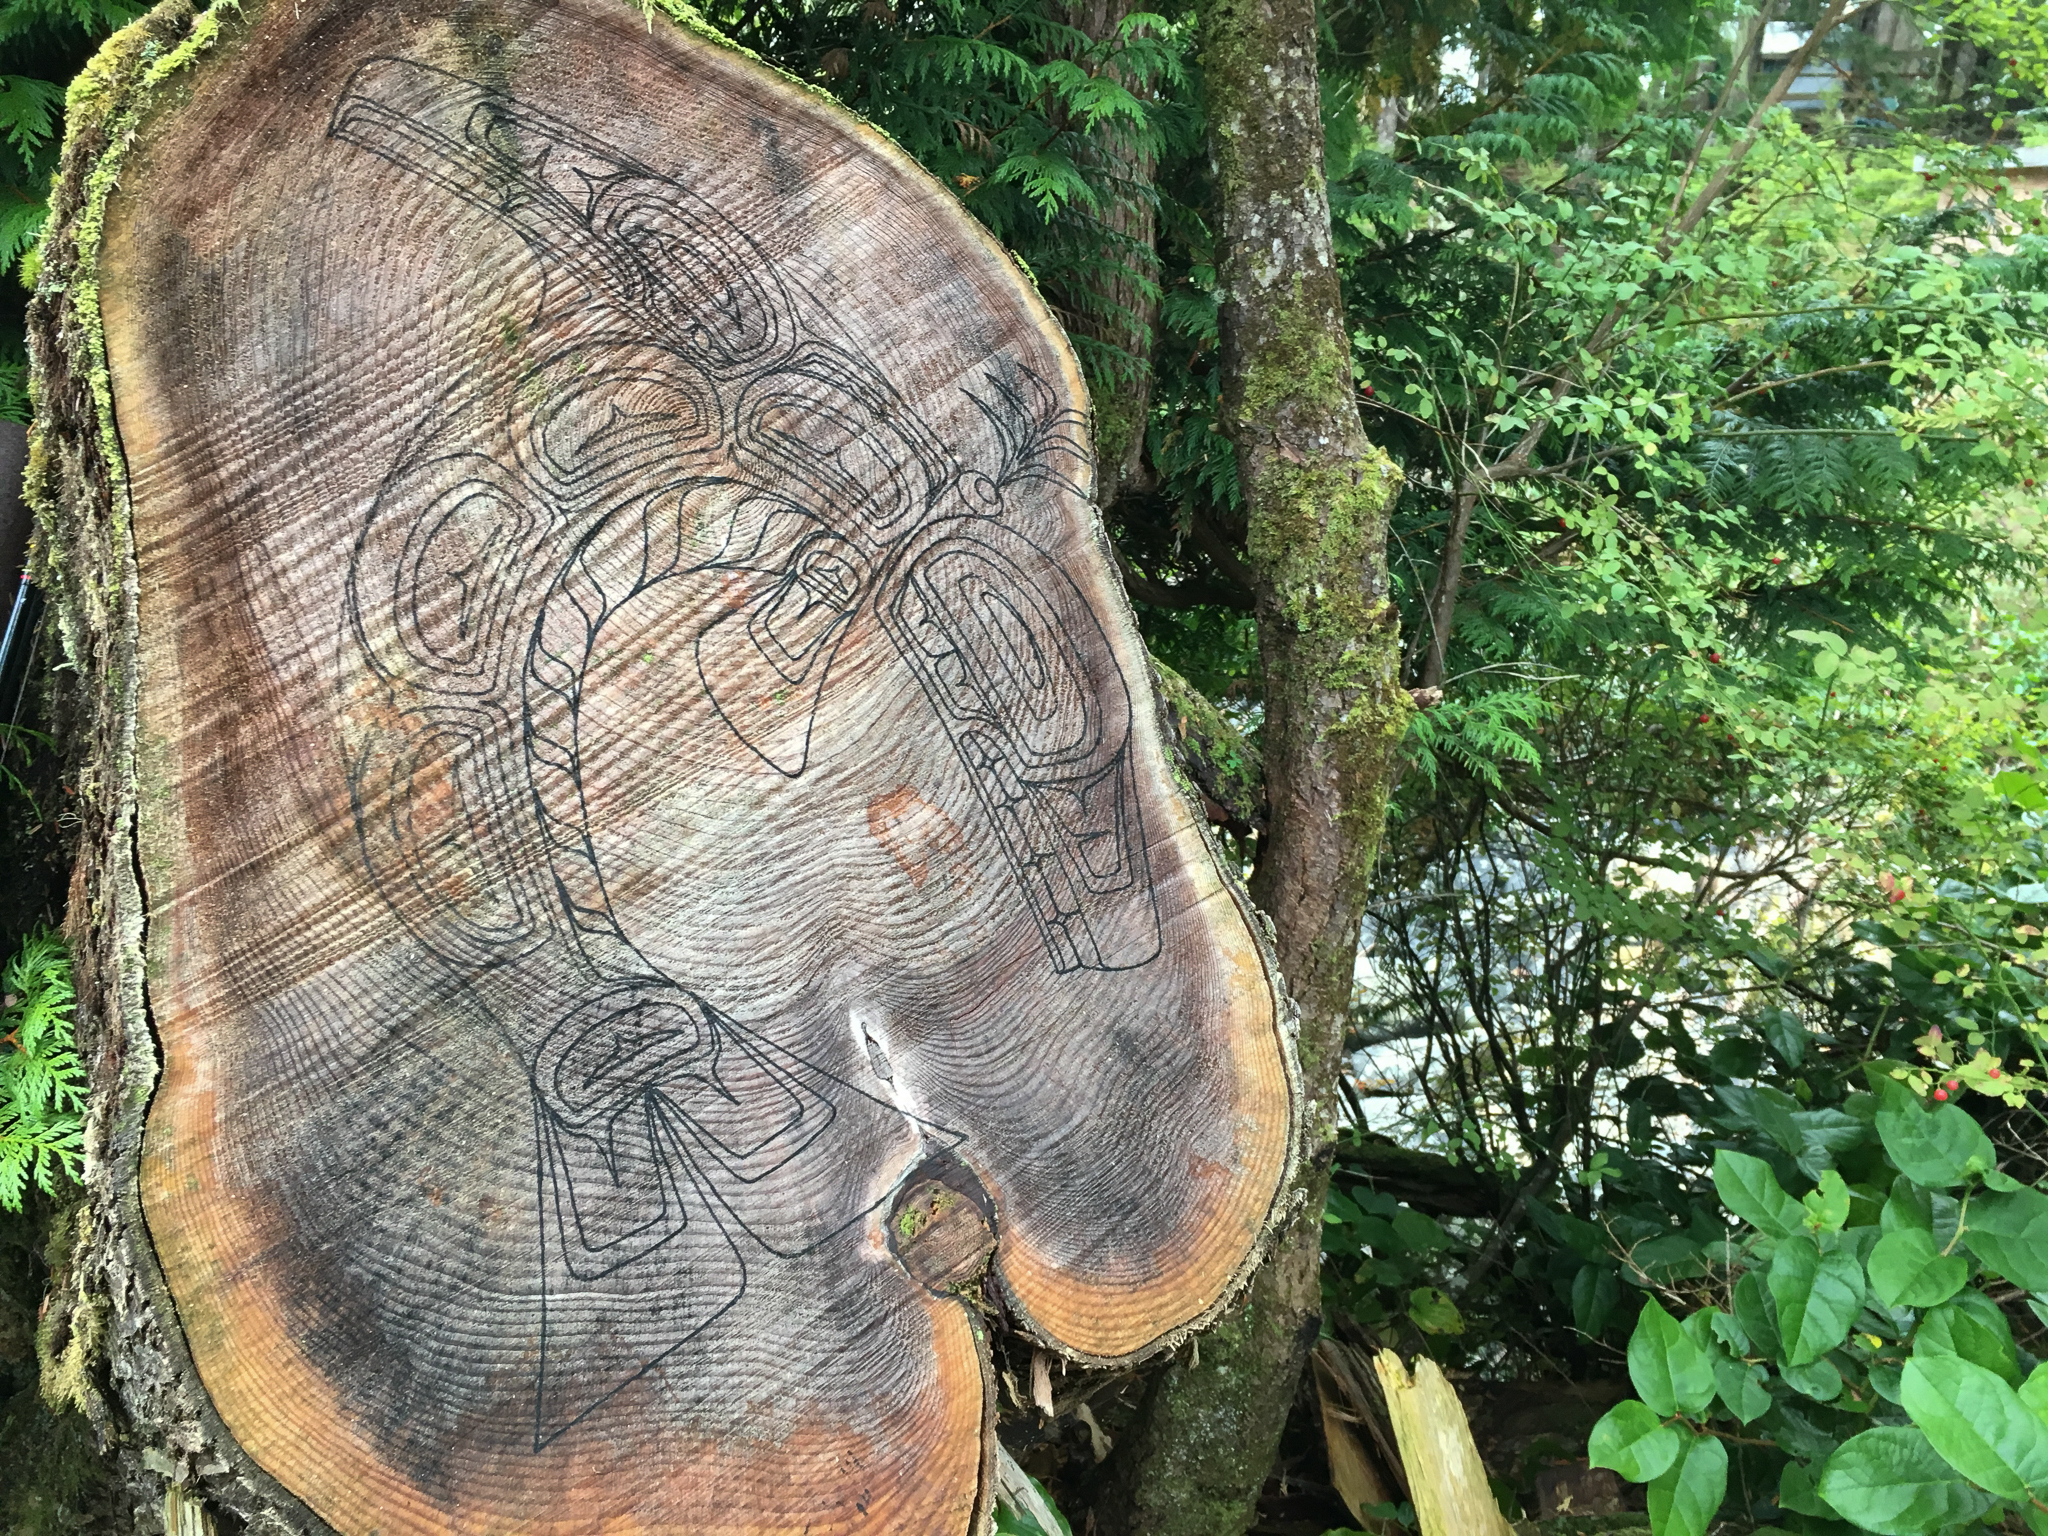 Artwork drawn with a Sharpie pen on the cut end of a tree trunk along a trail at Cetacea Lab, a remote whale research station